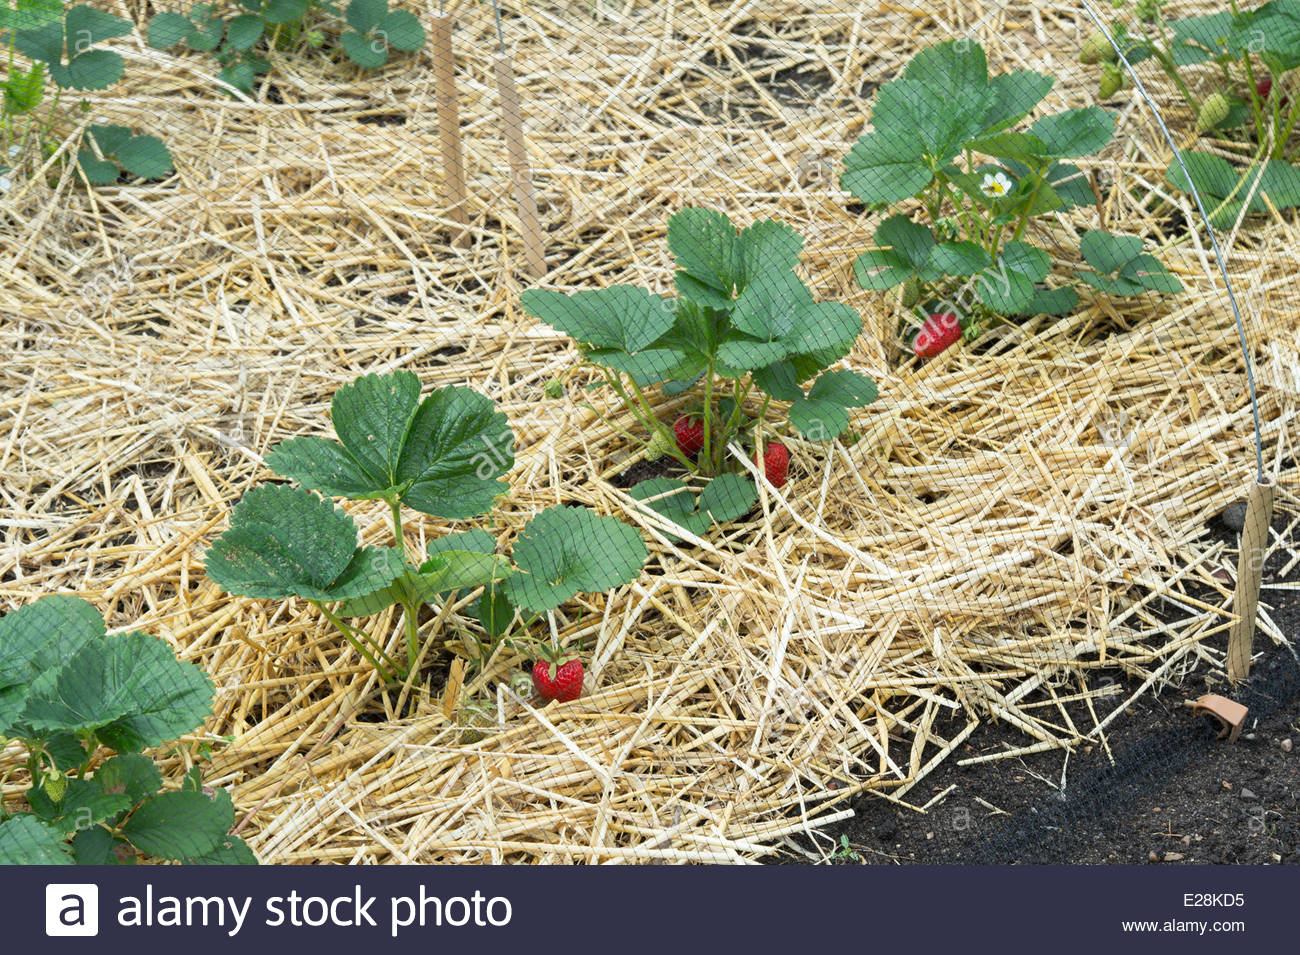 Protective Netting over Strawberry plants with ripe strawberries ...